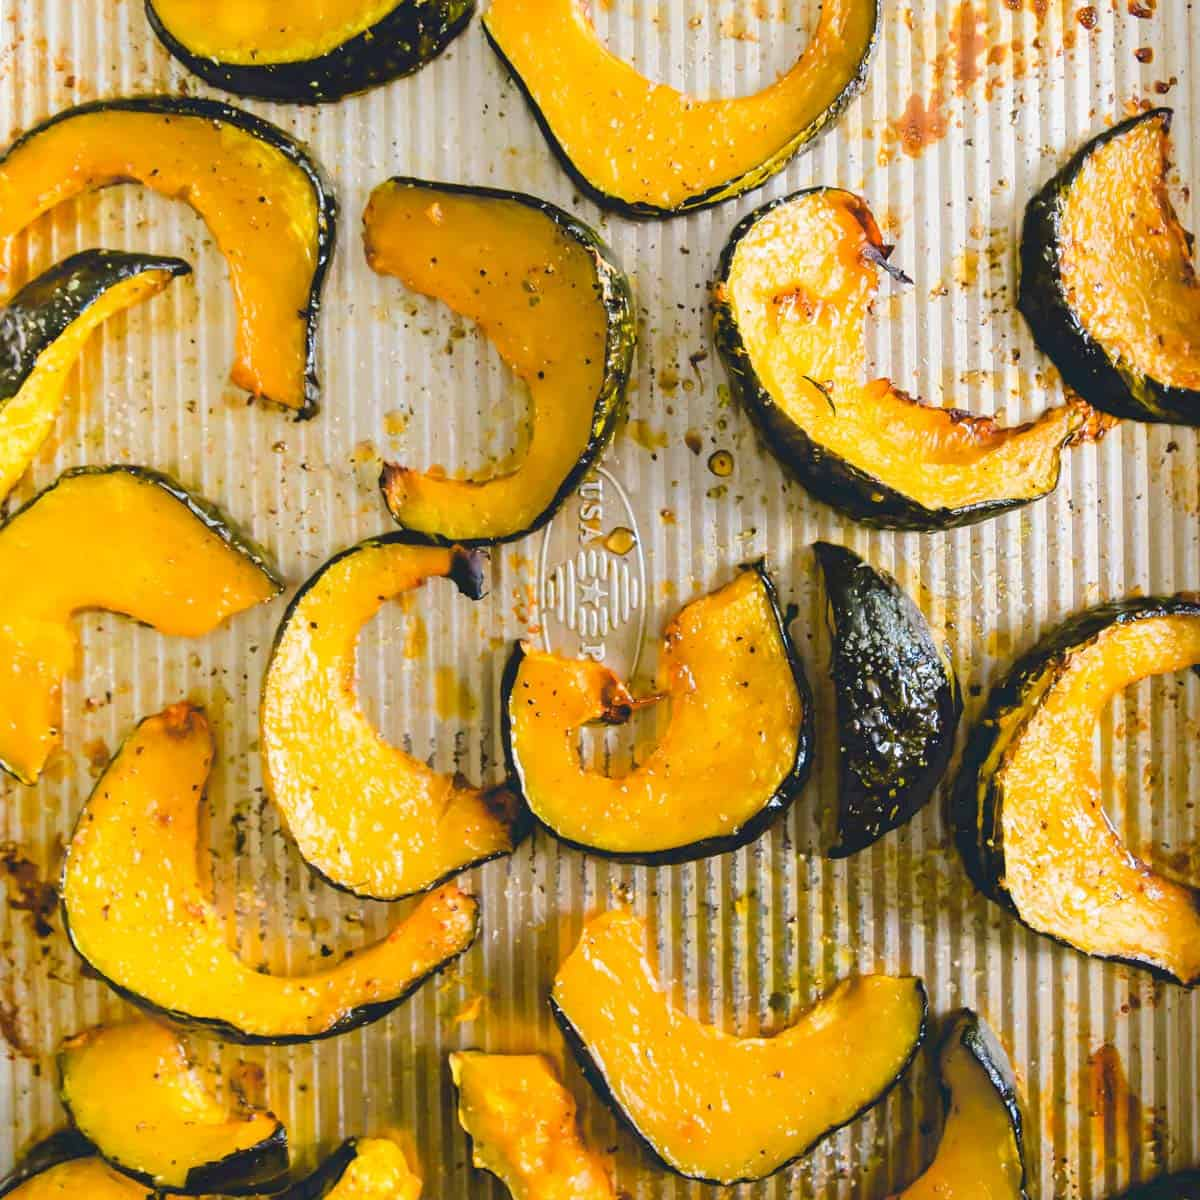 Simple roasted buttercup squash after 40 minutes in the oven with olive oil, salt, pepper and maple syrup.